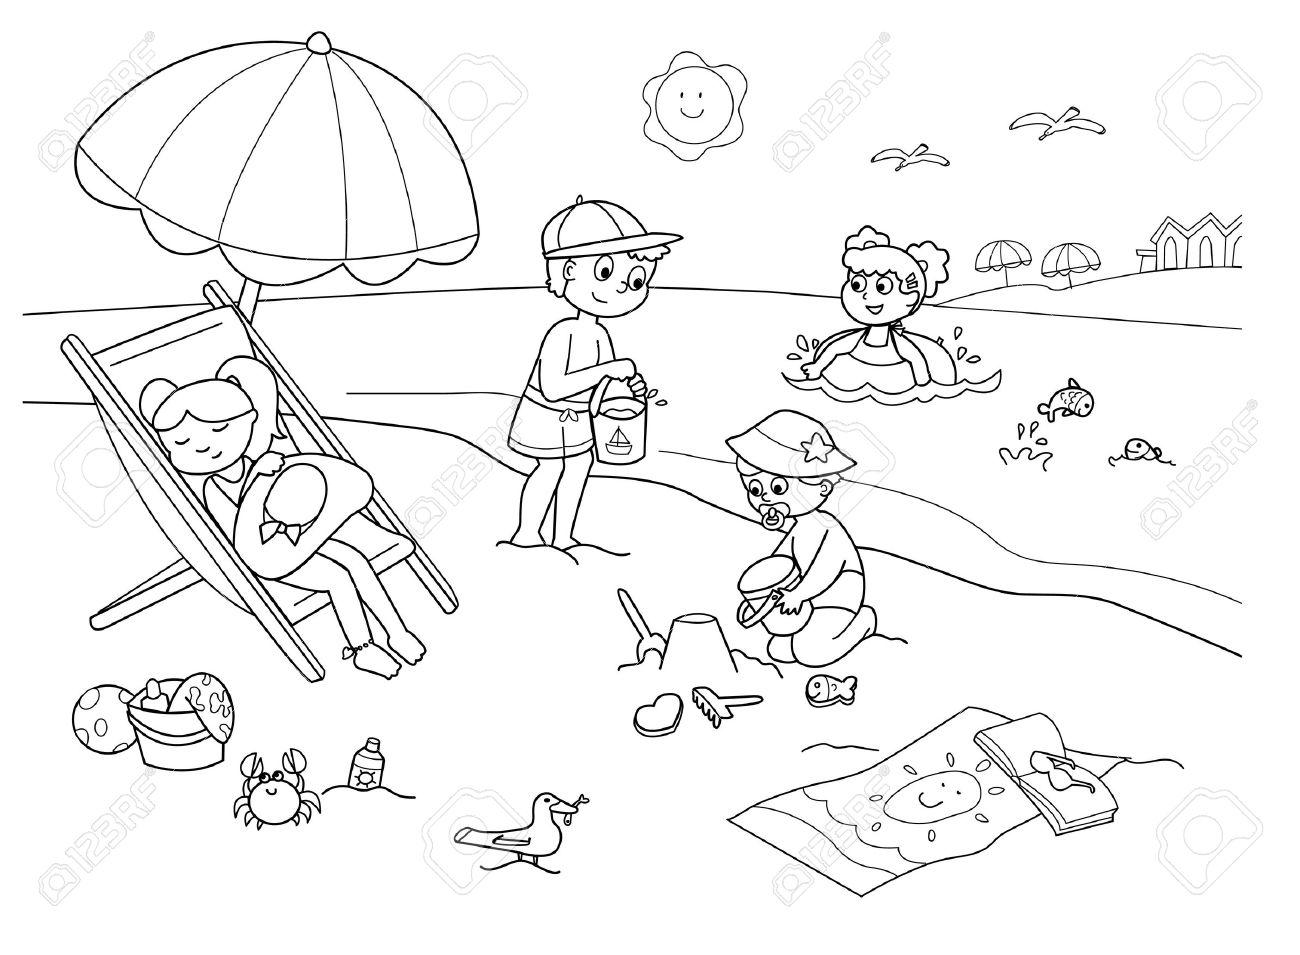 children playing with the sand at the beach. cartoon illustration